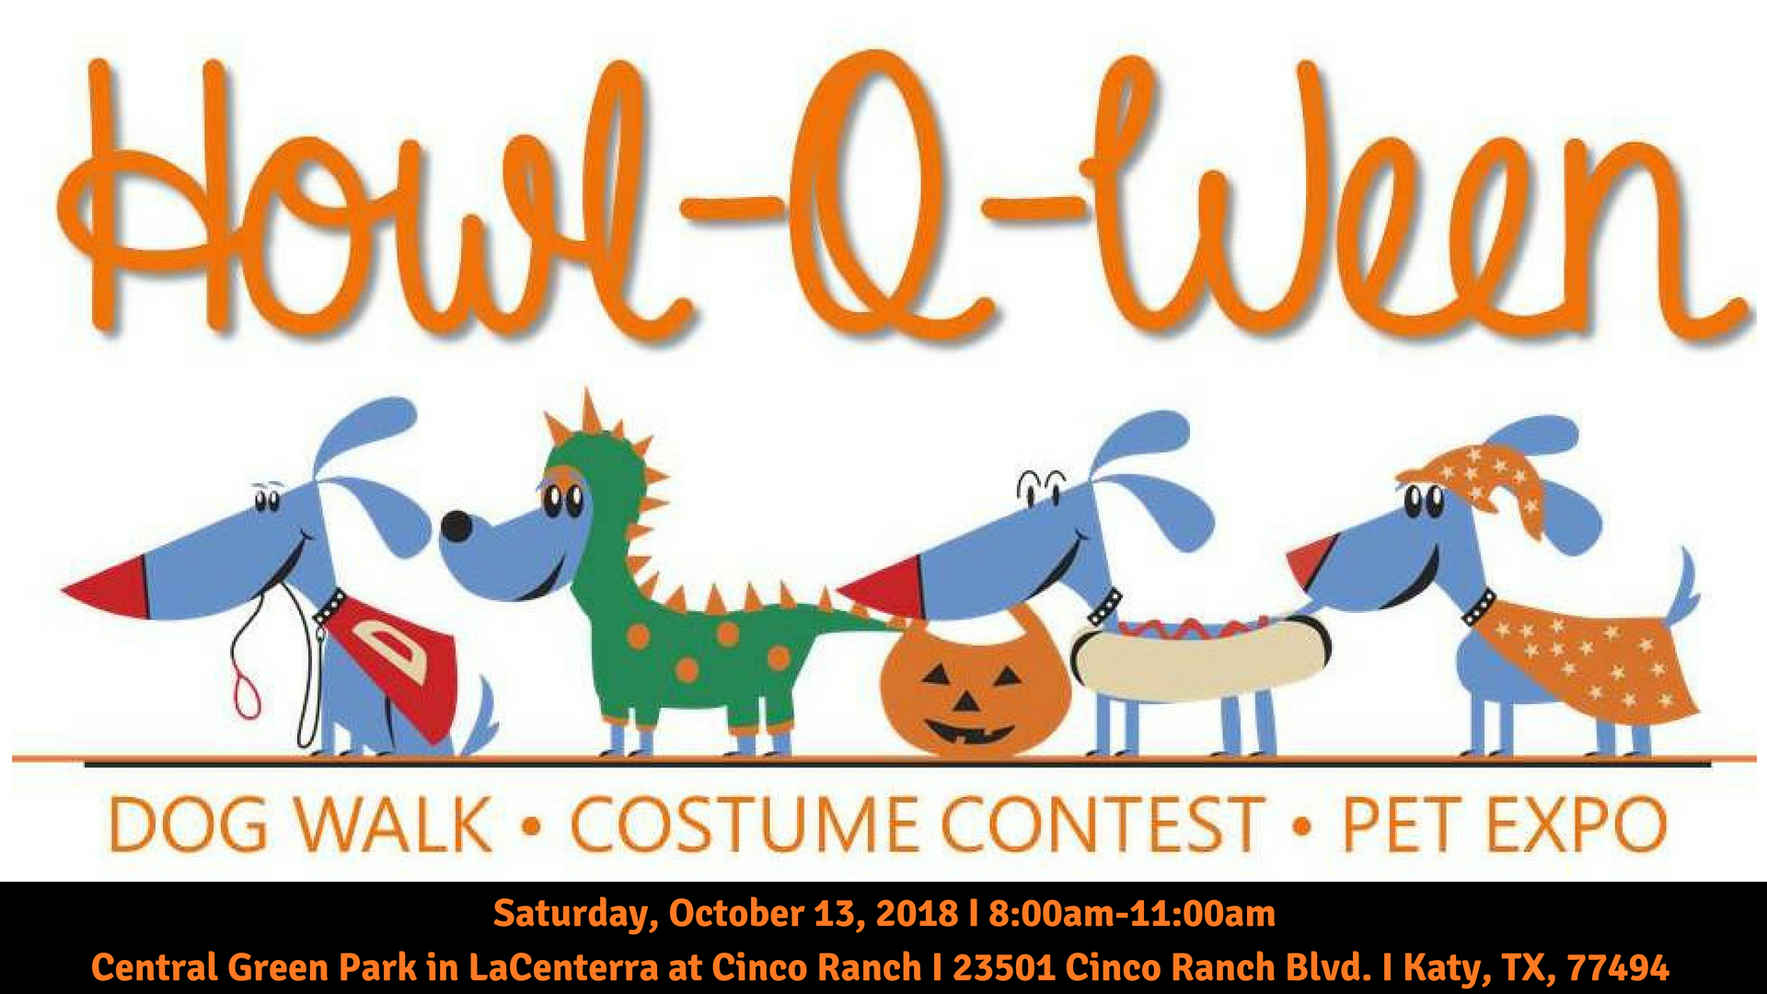 2019 Howl-o-Ween Dog Walk, Costume Contest & Pet Expo image